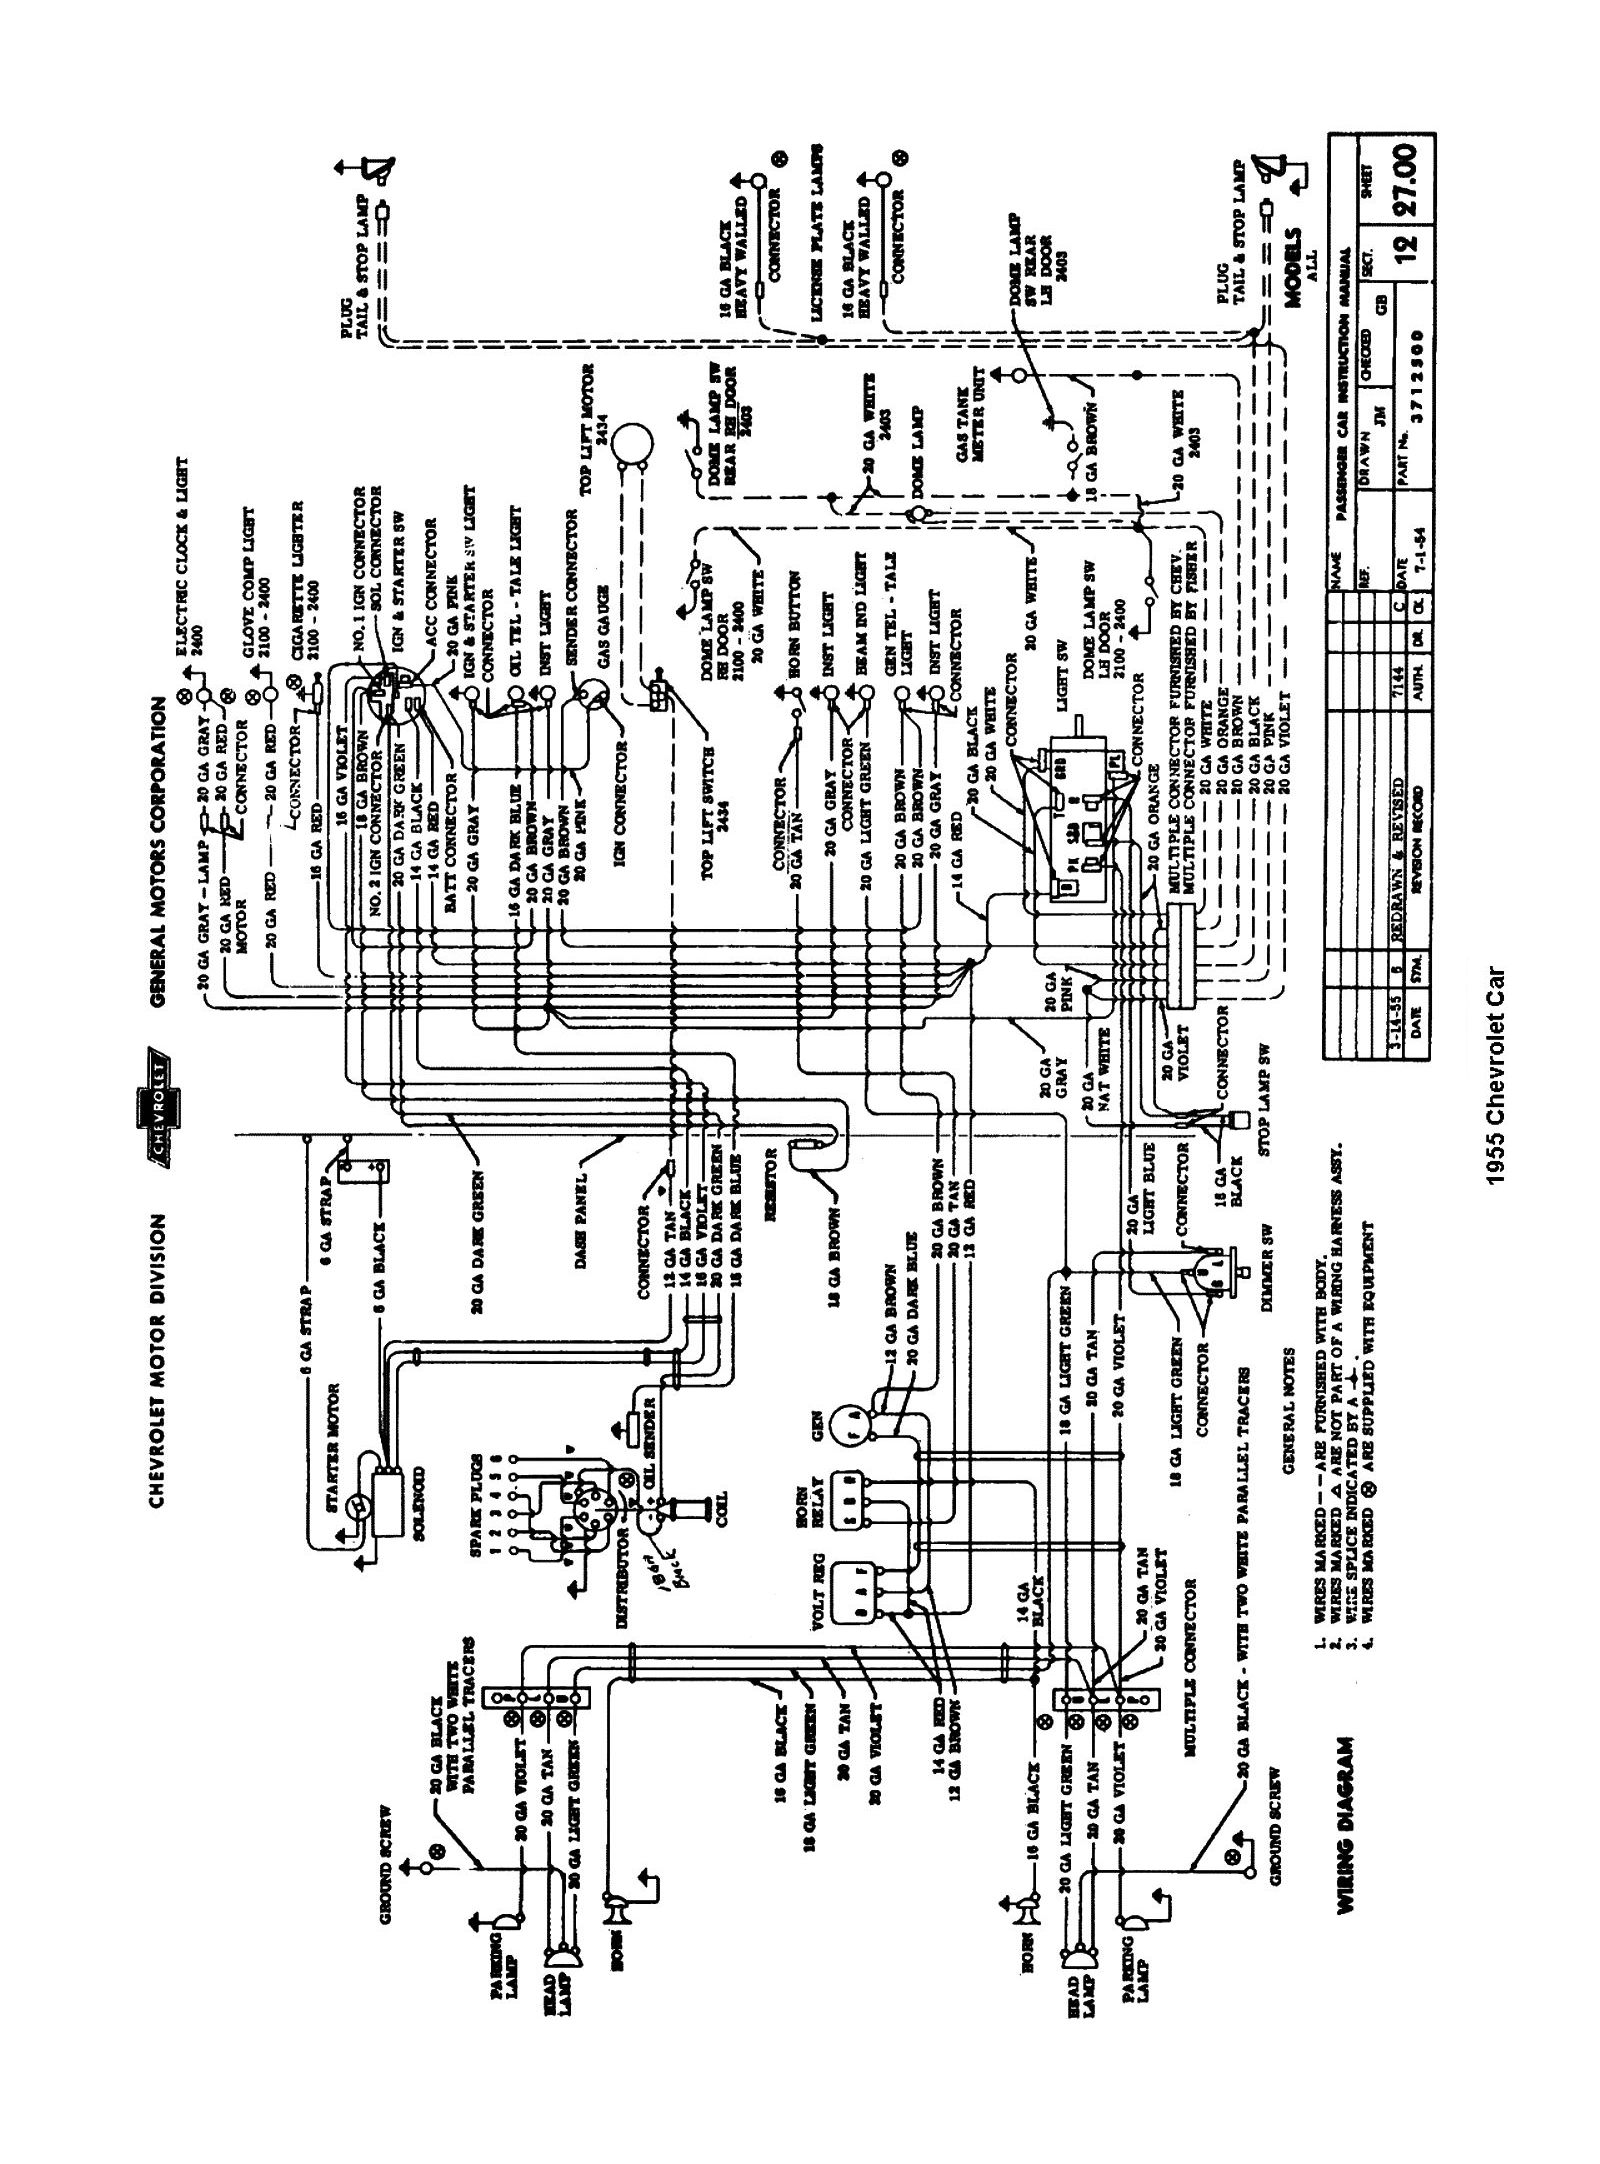 1953 Gmc Truck Wiring Diagram | Wiring Diagram  Dodge Pickup Wiring Schematic on dodge 318 distributor diagram, dodge neon wiring diagrams, dodge ram ignition diagram, dodge electrical schematics, chevy s10 schematics, dodge truck trailer wiring, dodge wiring color codes, 1973 chevy truck electrical schematics, dodge alternator wiring, dodge ignition wiring diagram, 2002 dodge caravan schematics,